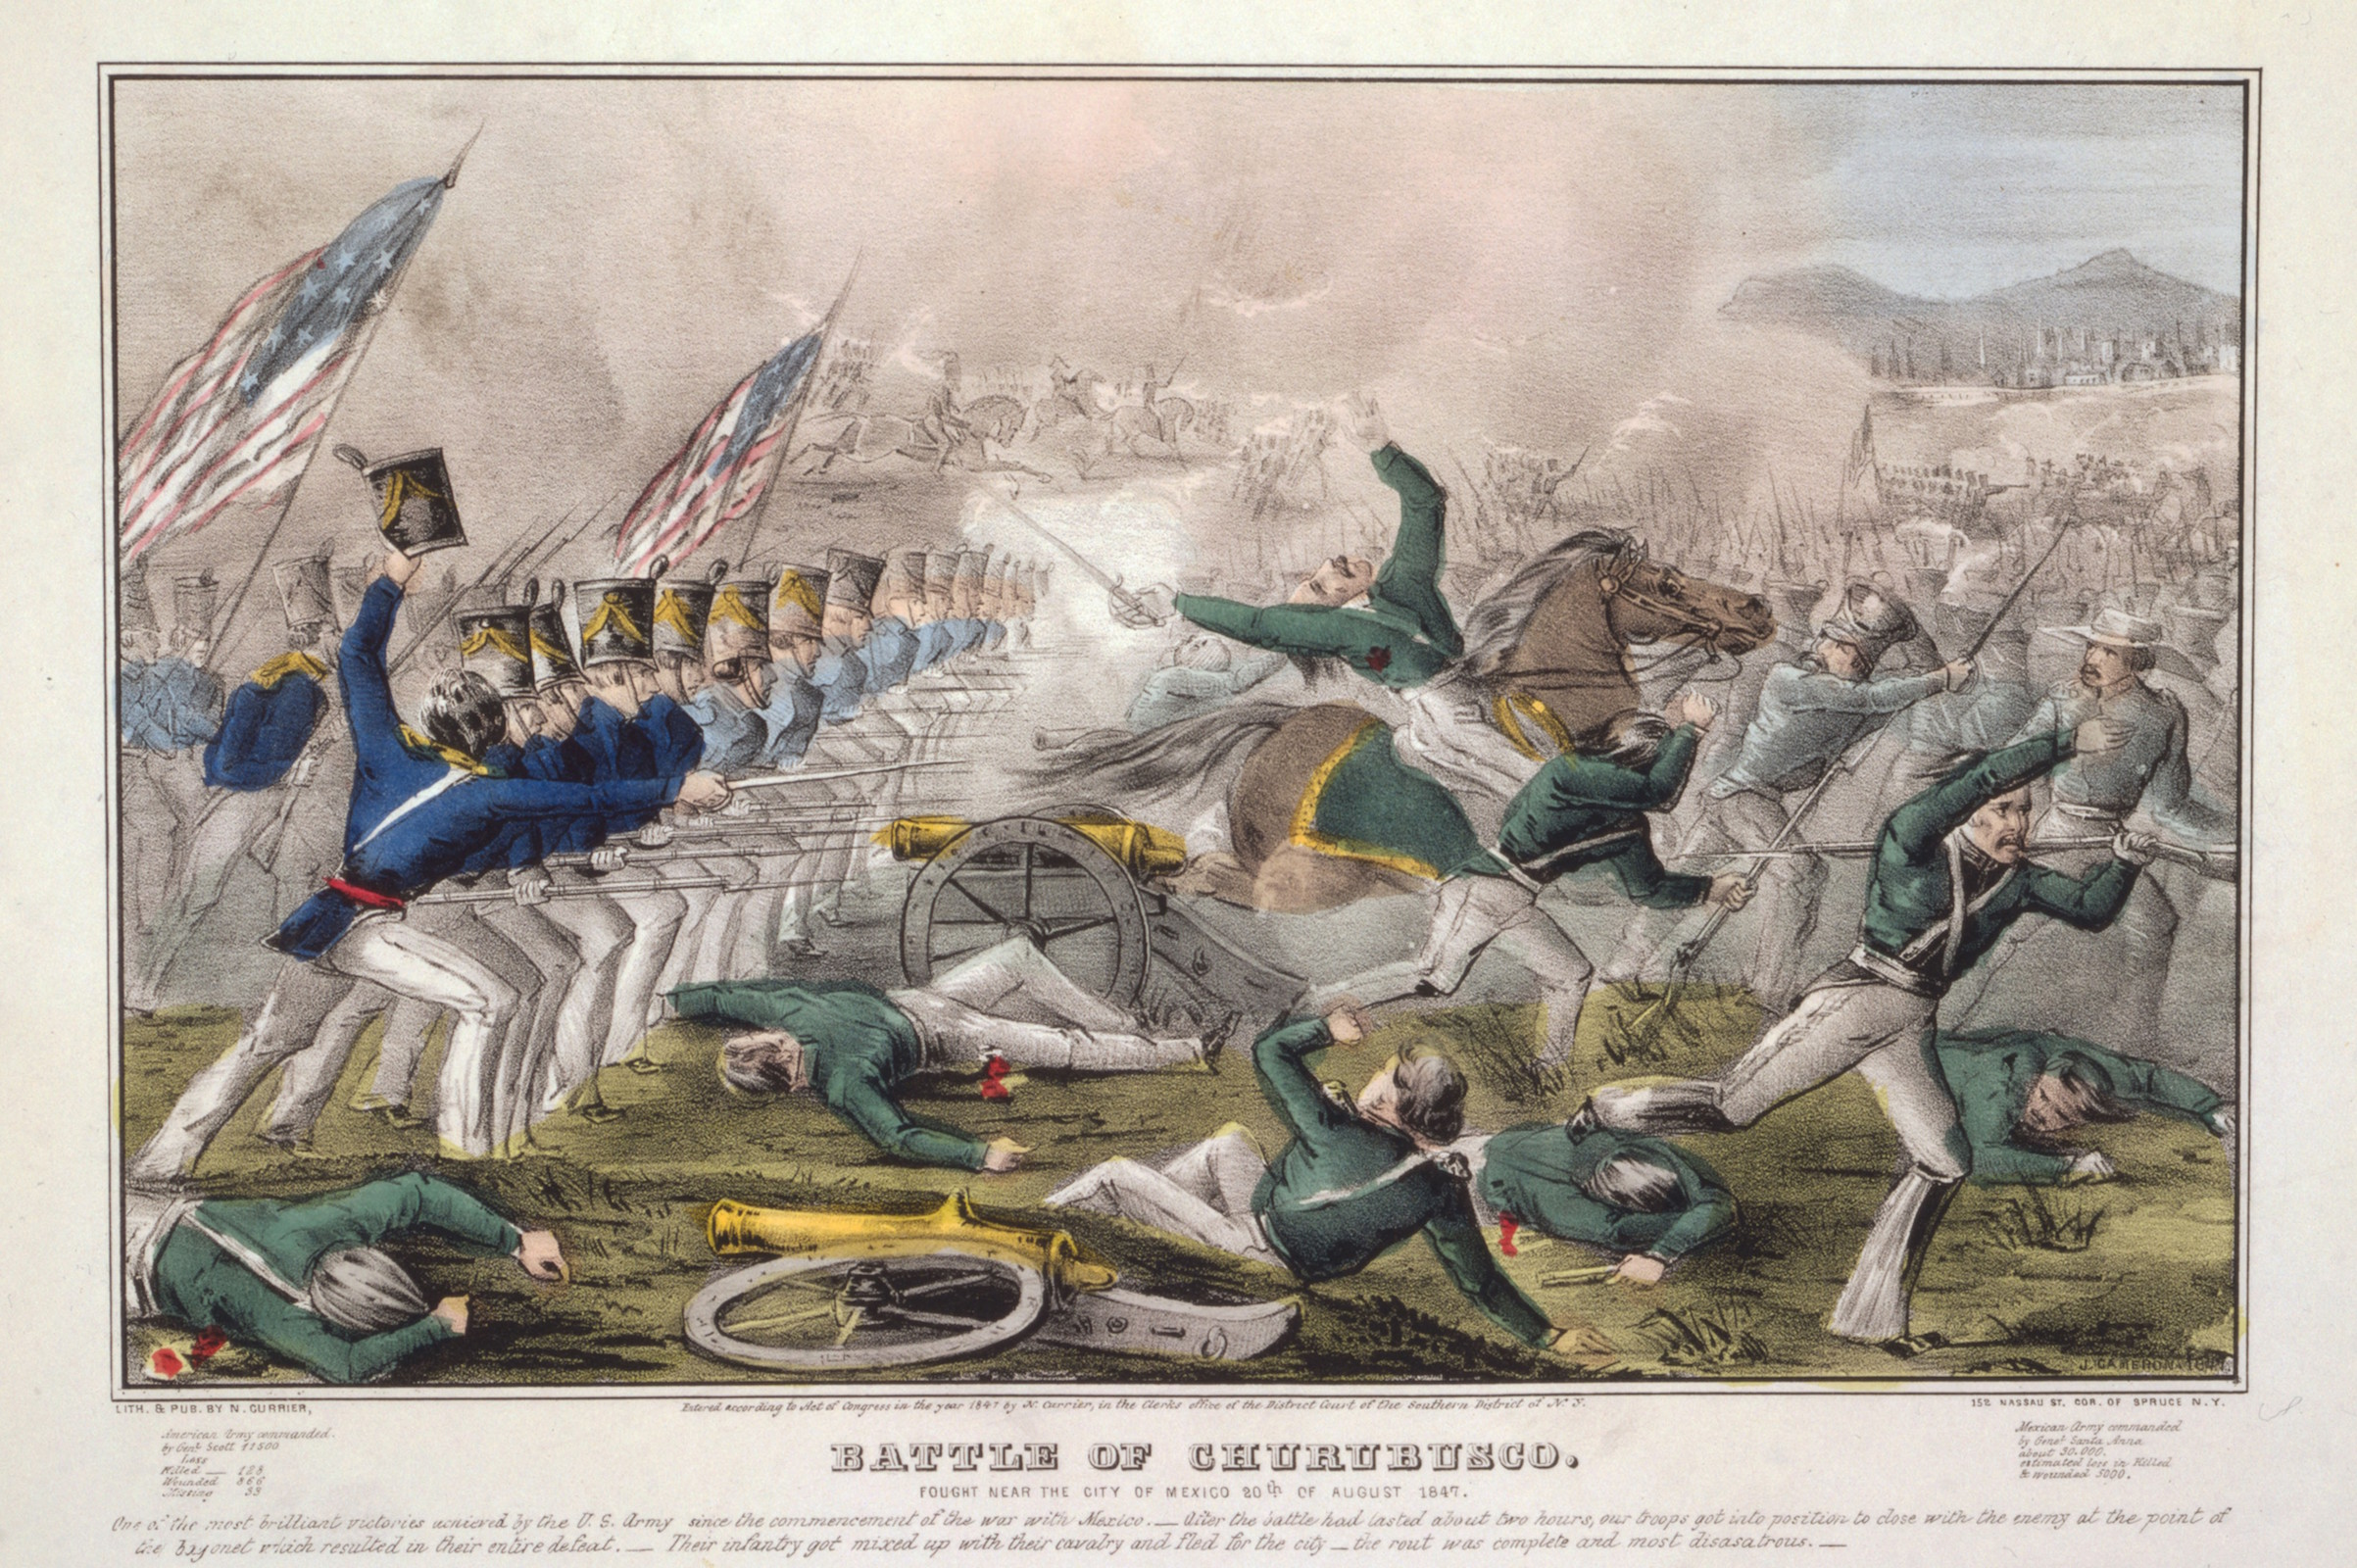 Currier & Ives illustration of the Battle of Churubusco, Aug. 20, 1847, fought  5 miles from Mexico City.